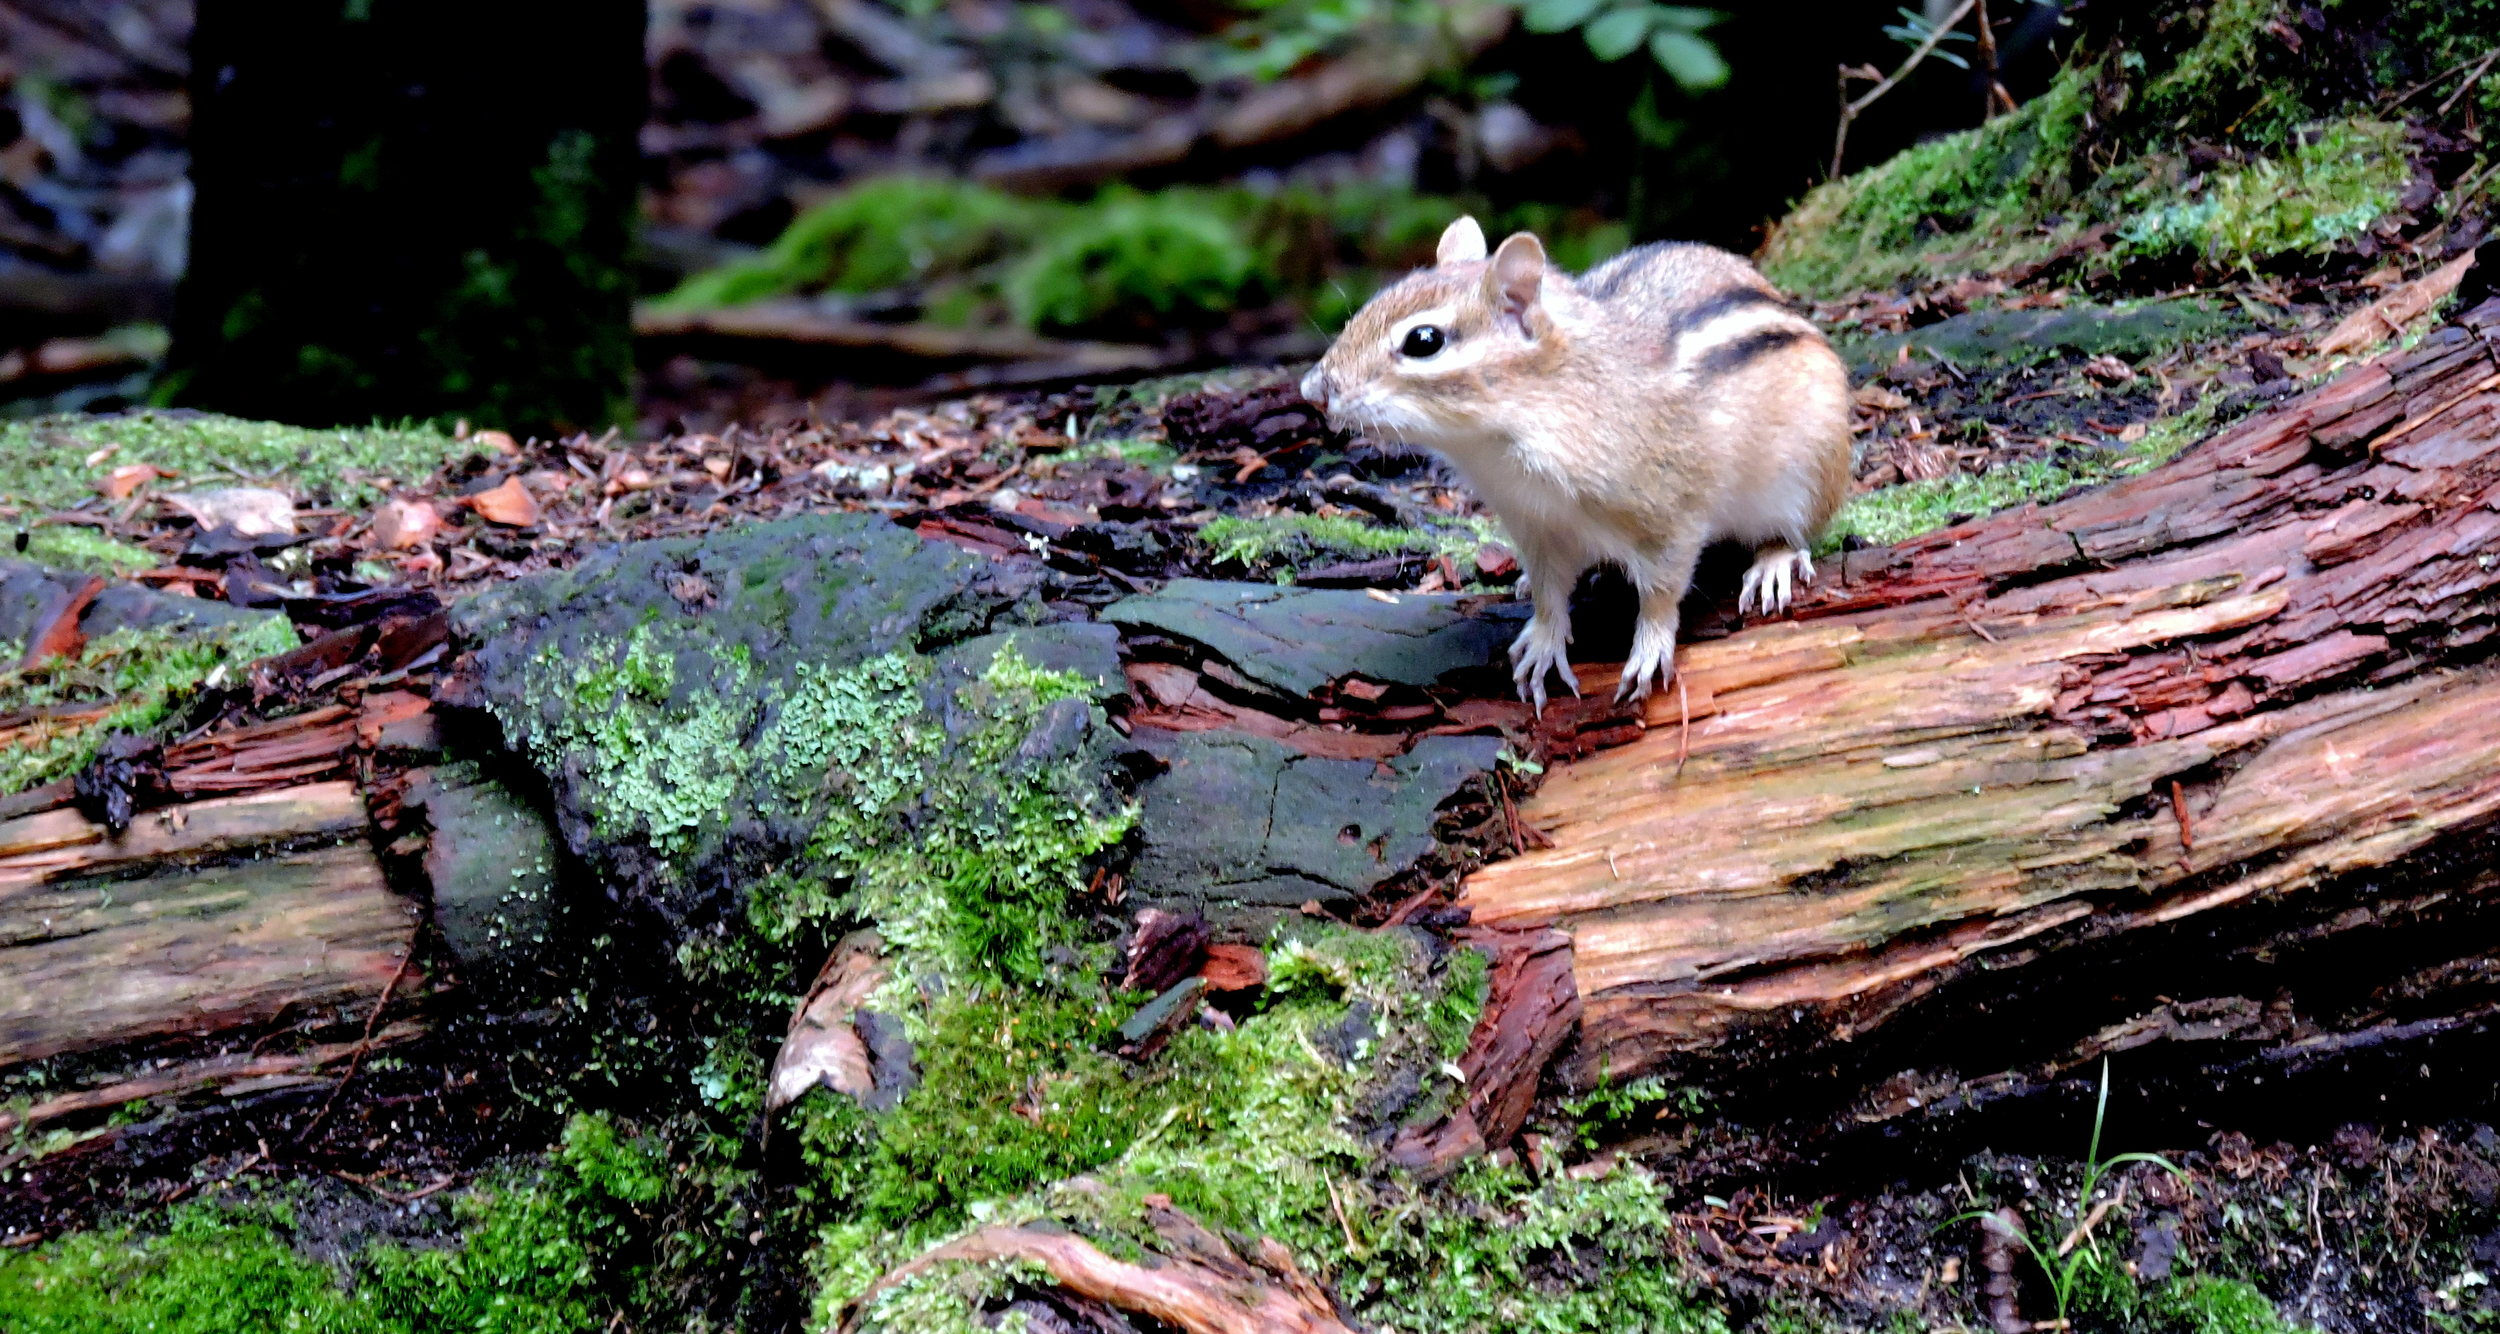 Classed as mammals in the Scuiridae family, chipmunks keep their food in very organized burrows in the ground.